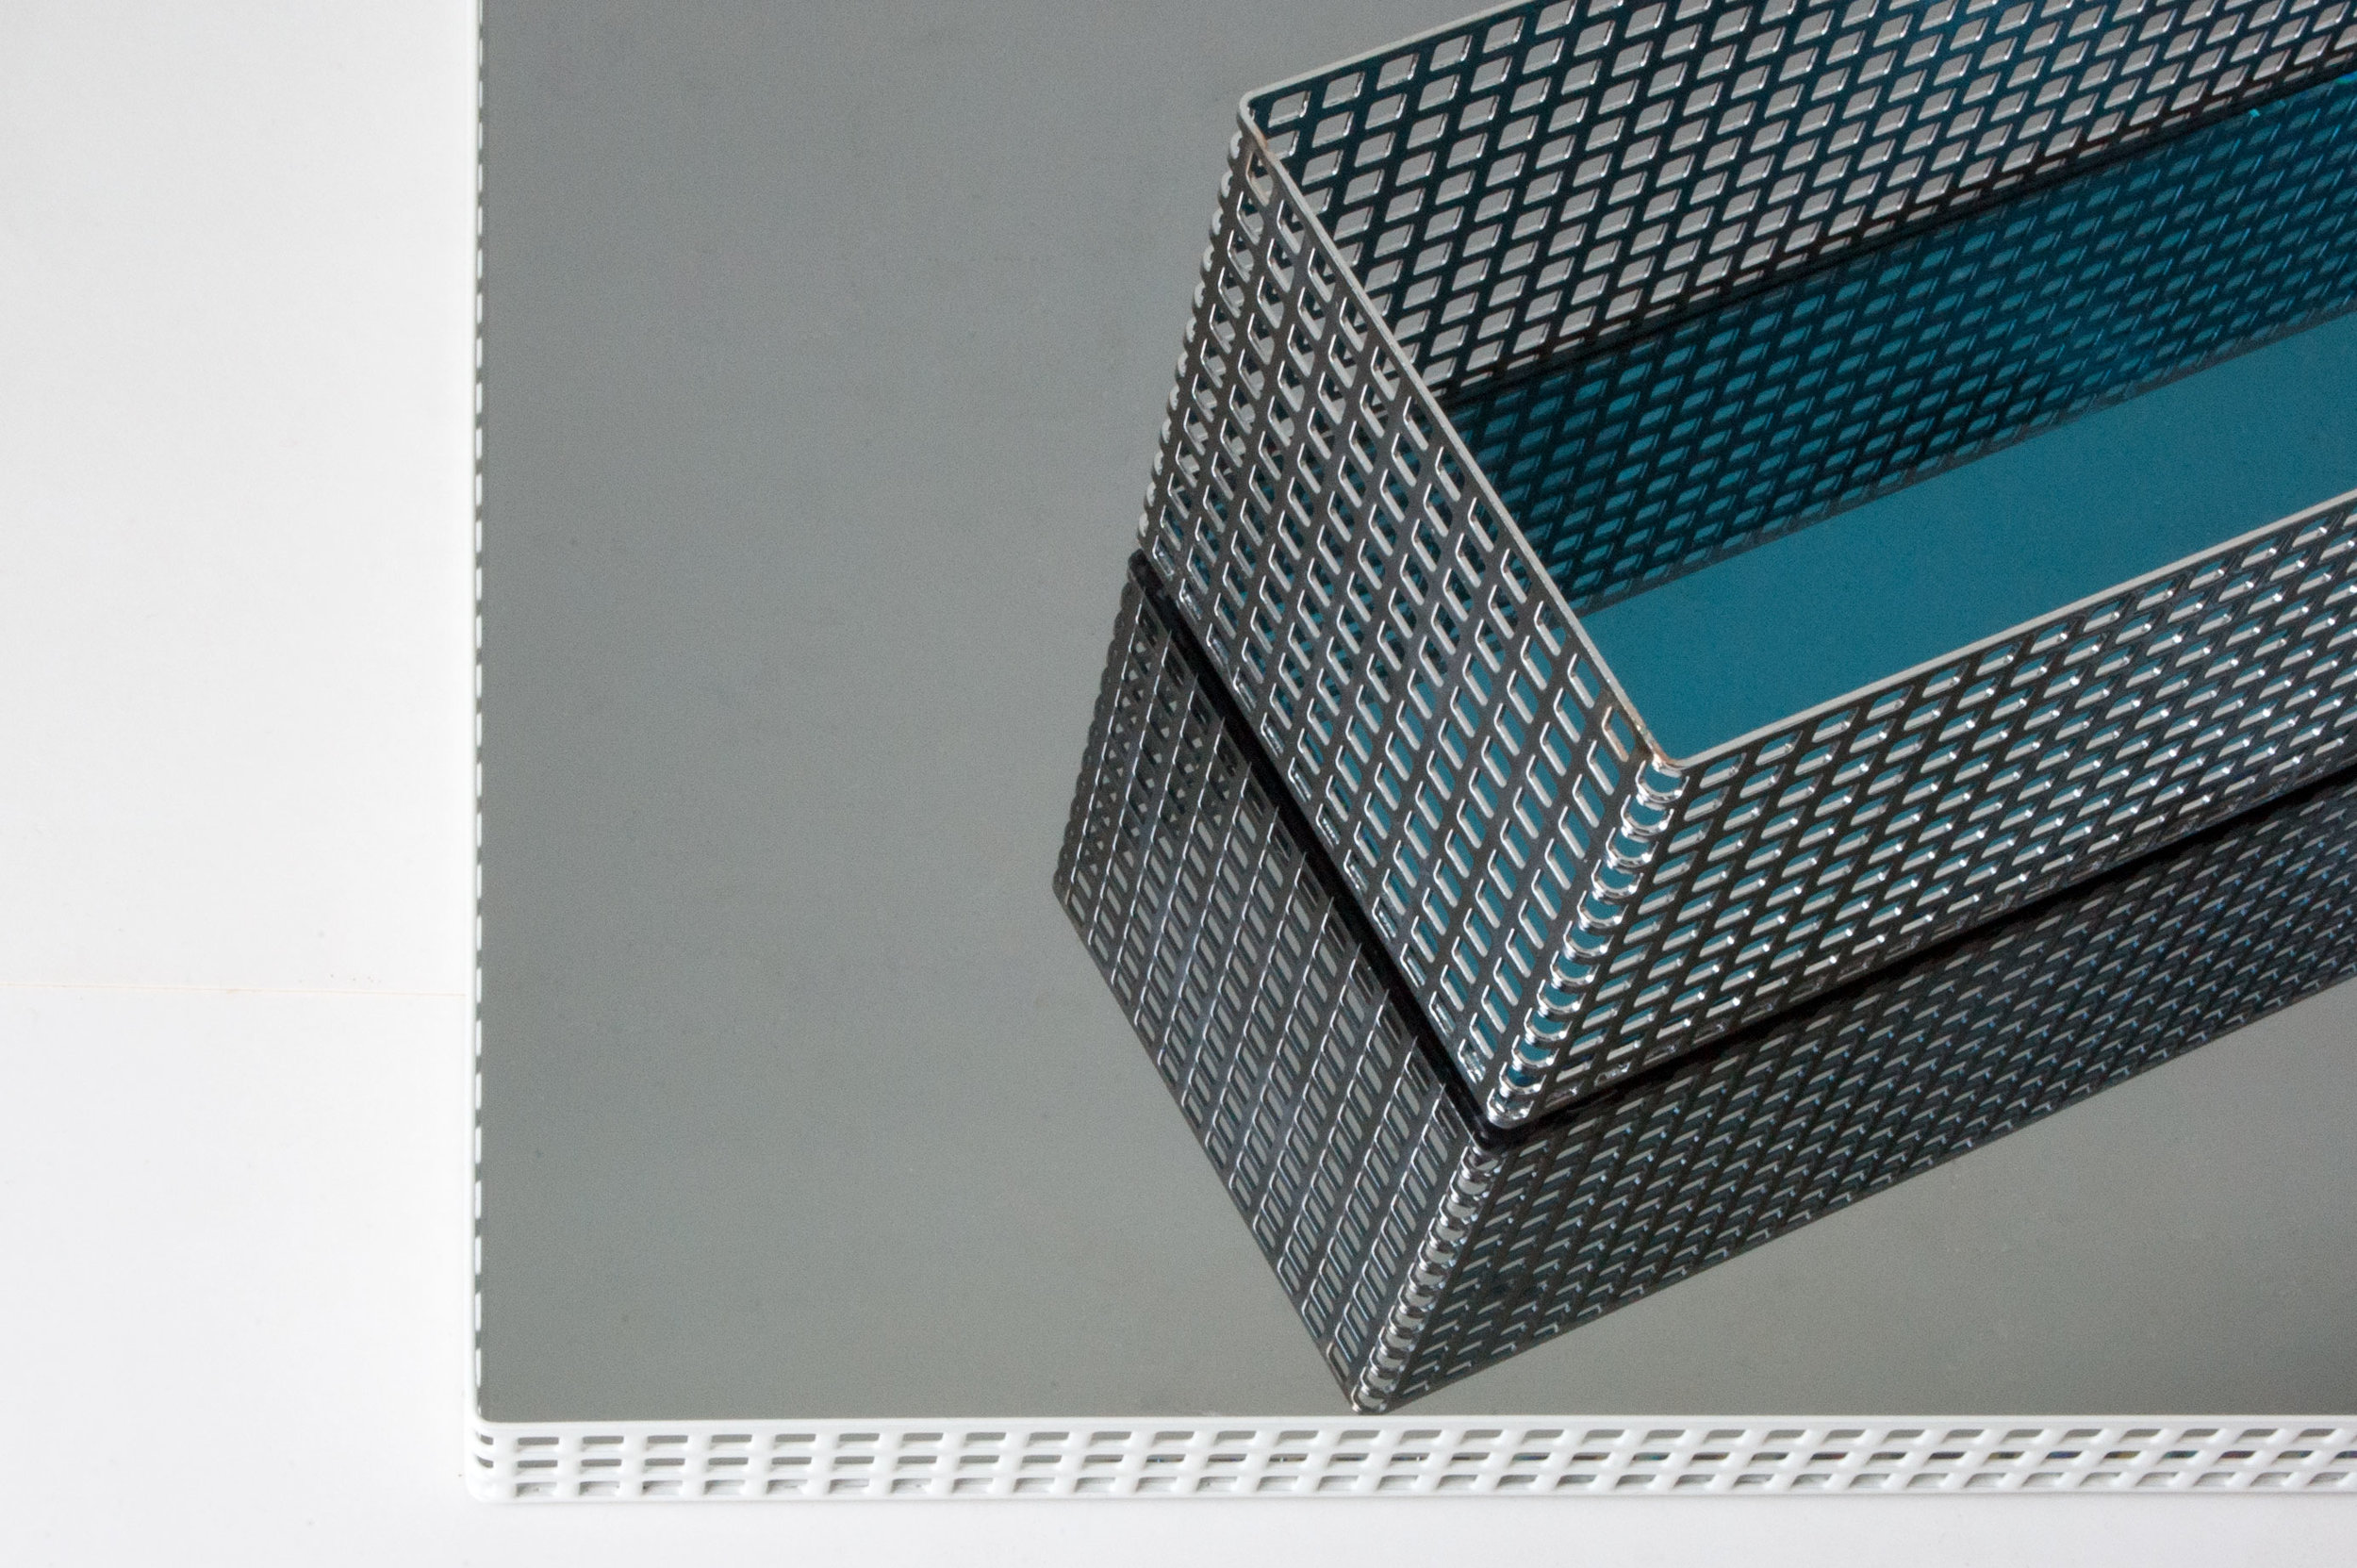 Table-Architecture-2015-Low-Res.jpg